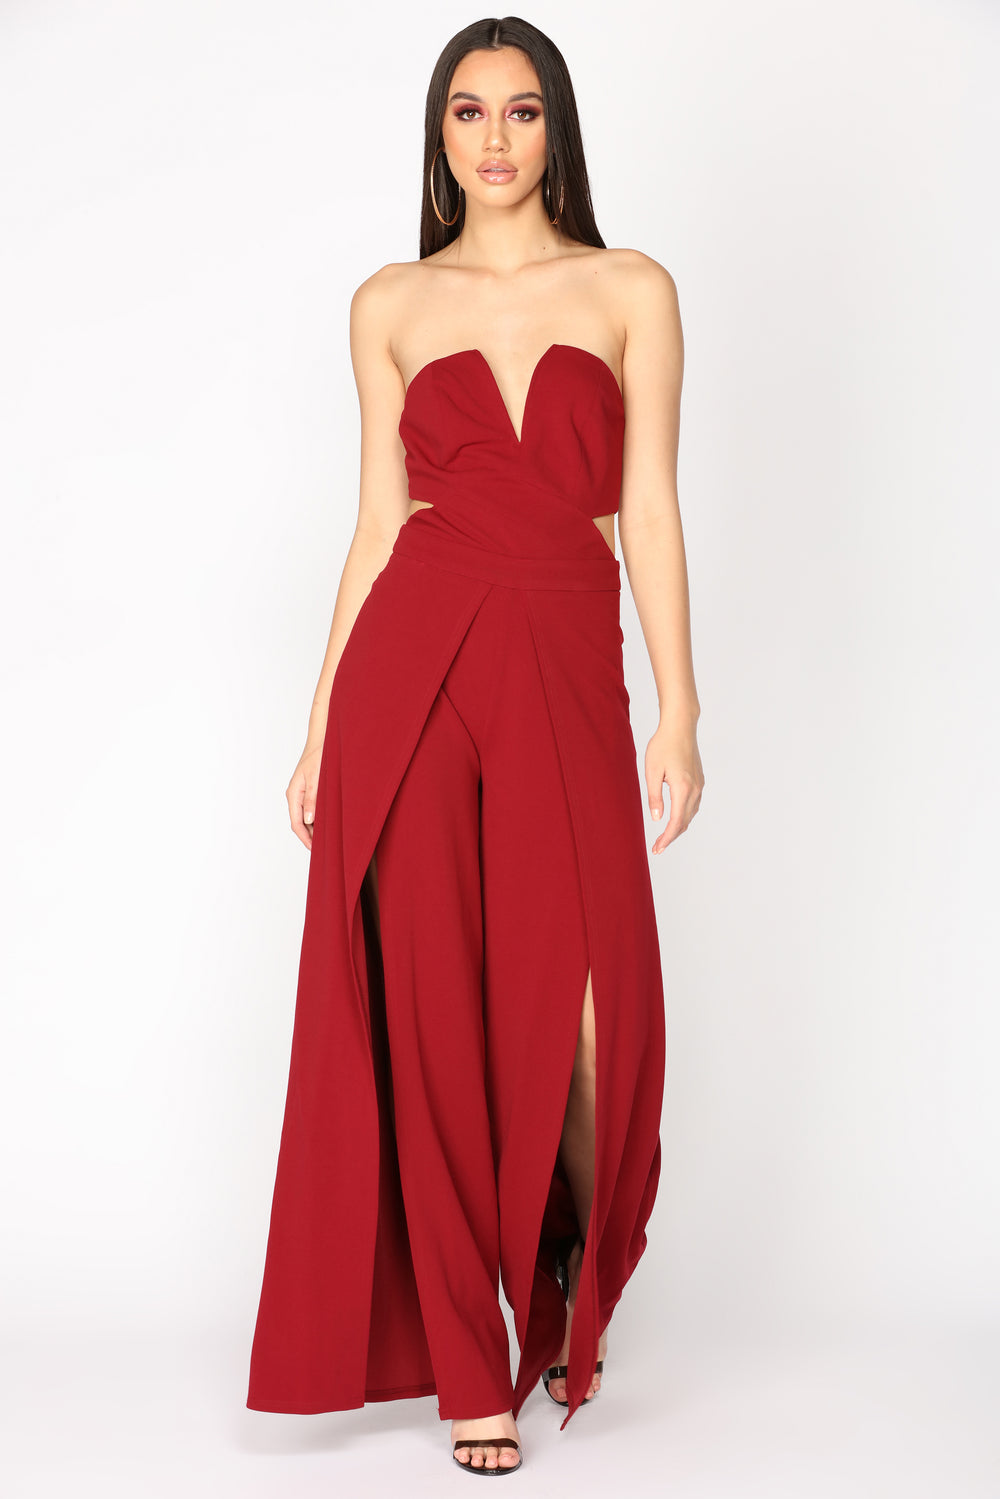 Feel It Coming Slit Jumpsuit - Wine